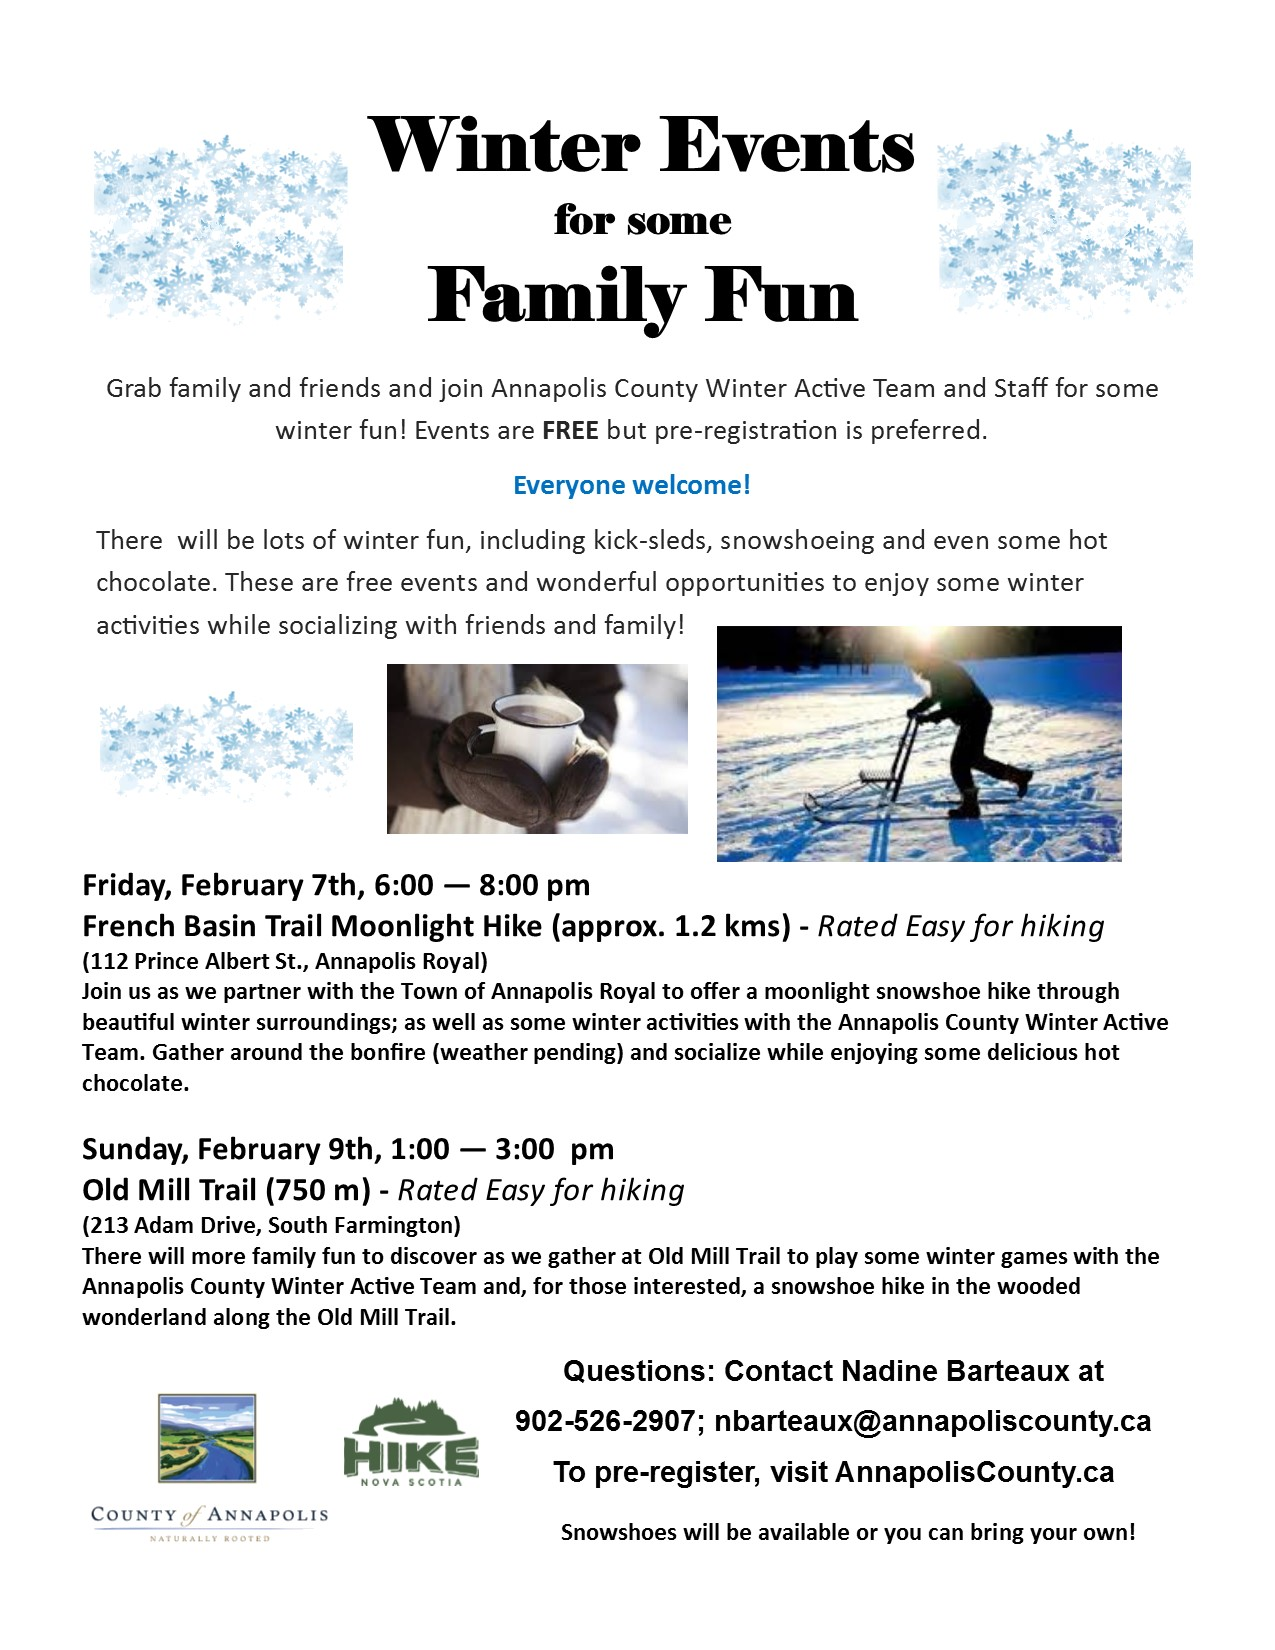 Winter Family Activites poster II